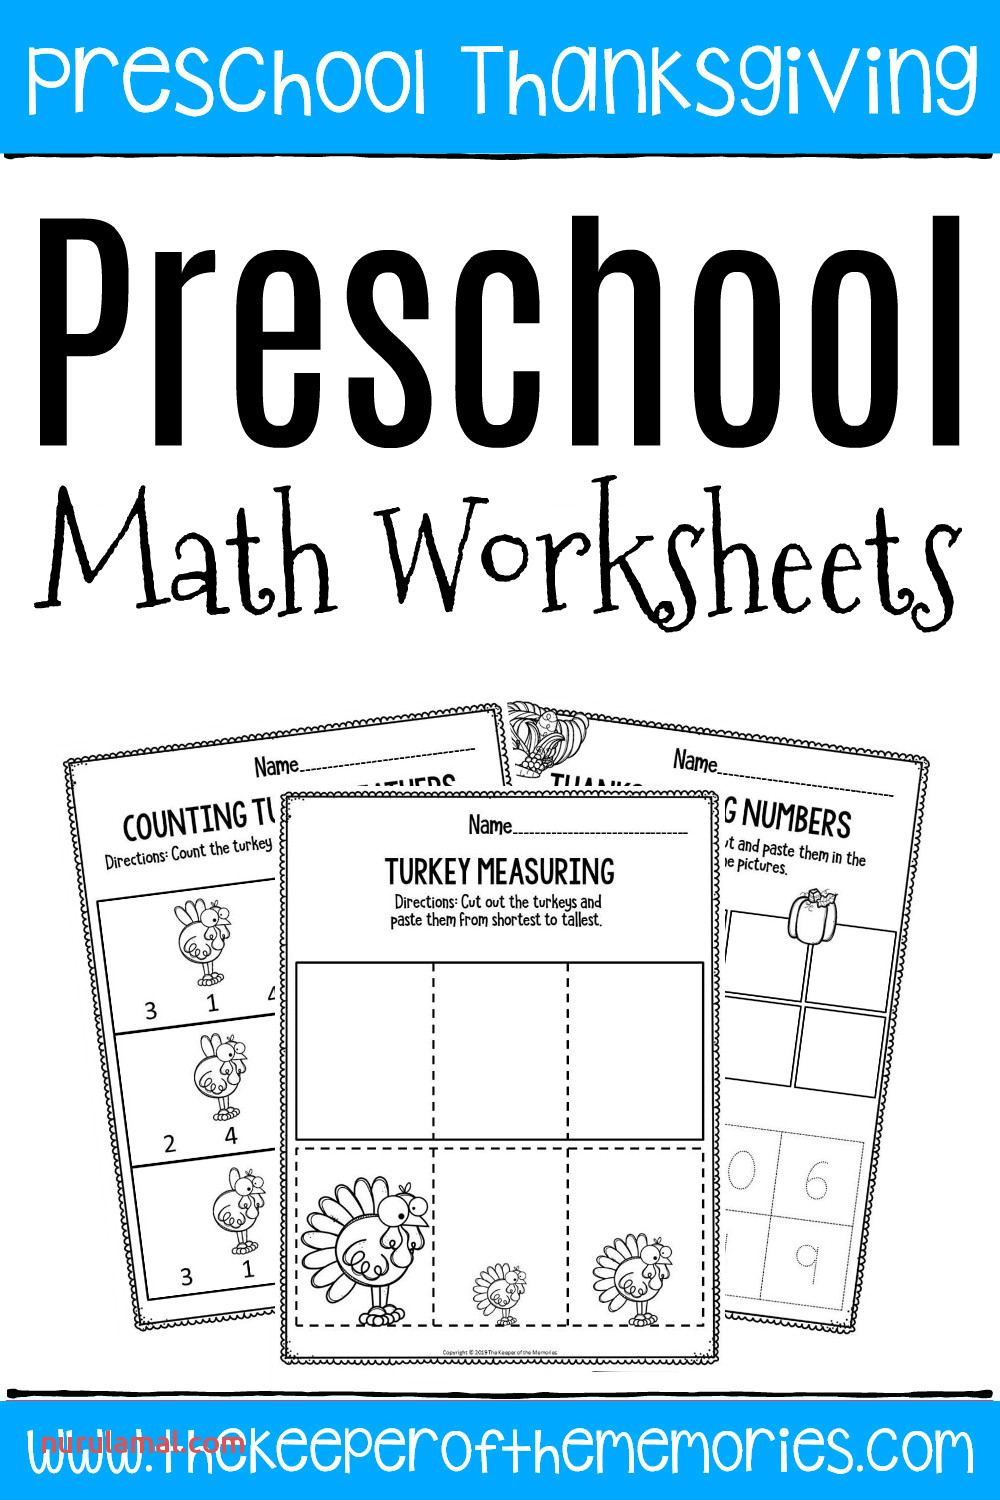 Worksheet Ideas Remarkablel Math Worksheets Picture